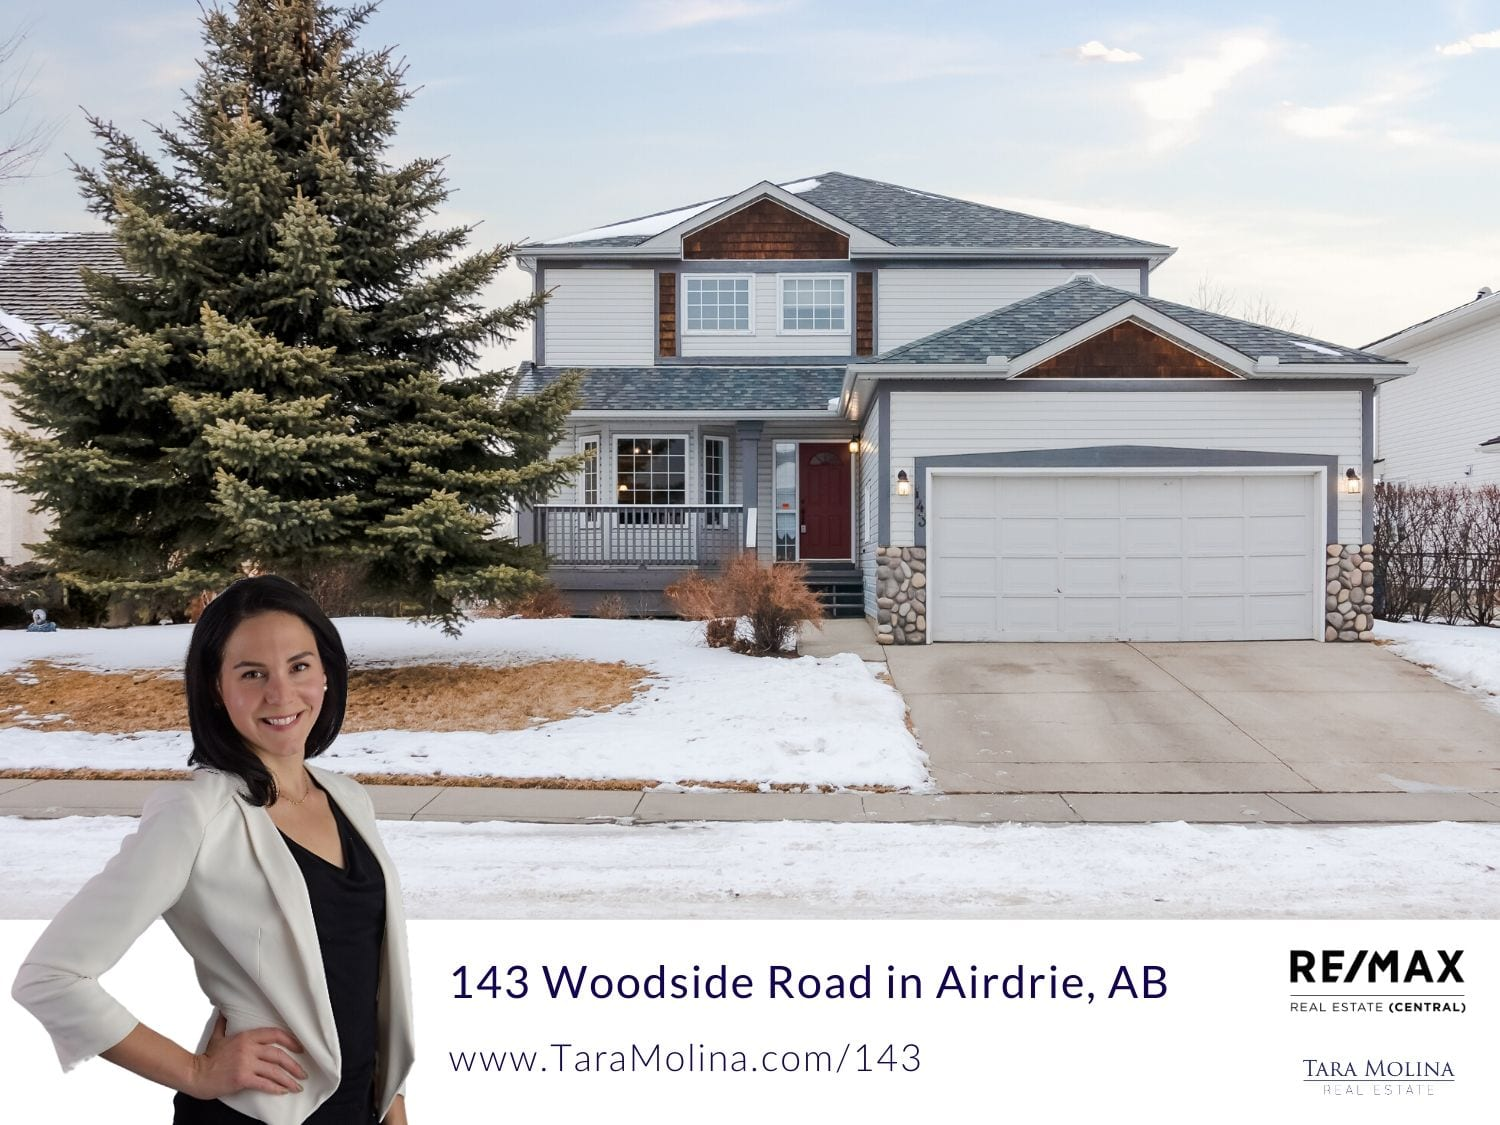 143 Woodside Road in Airdrie, AB